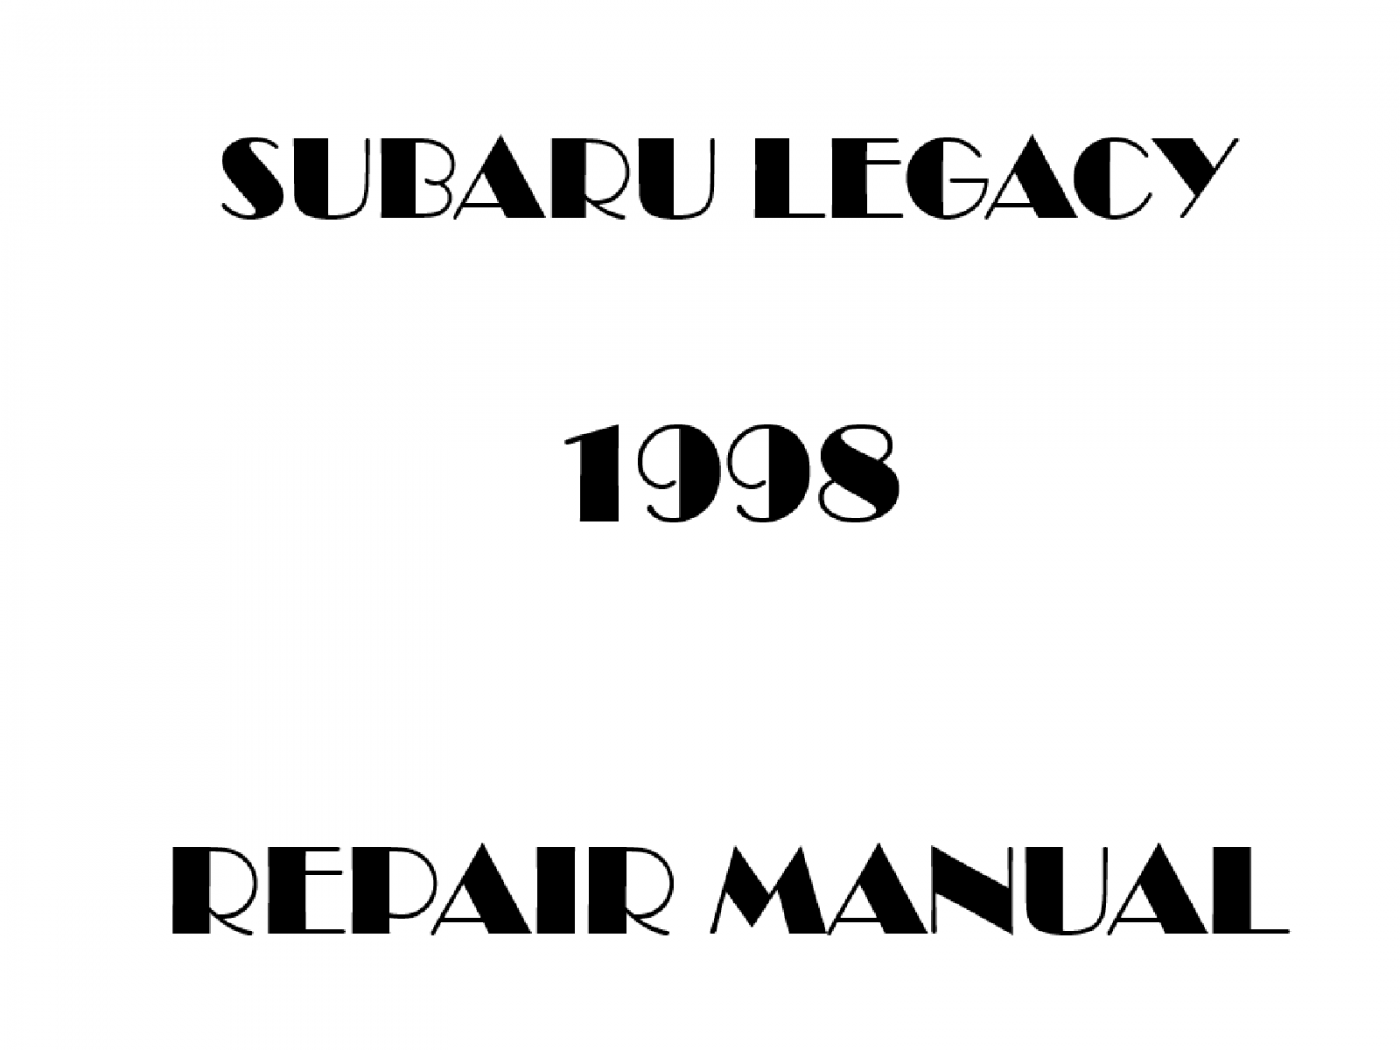 1998 Subaru Legacy repair manual